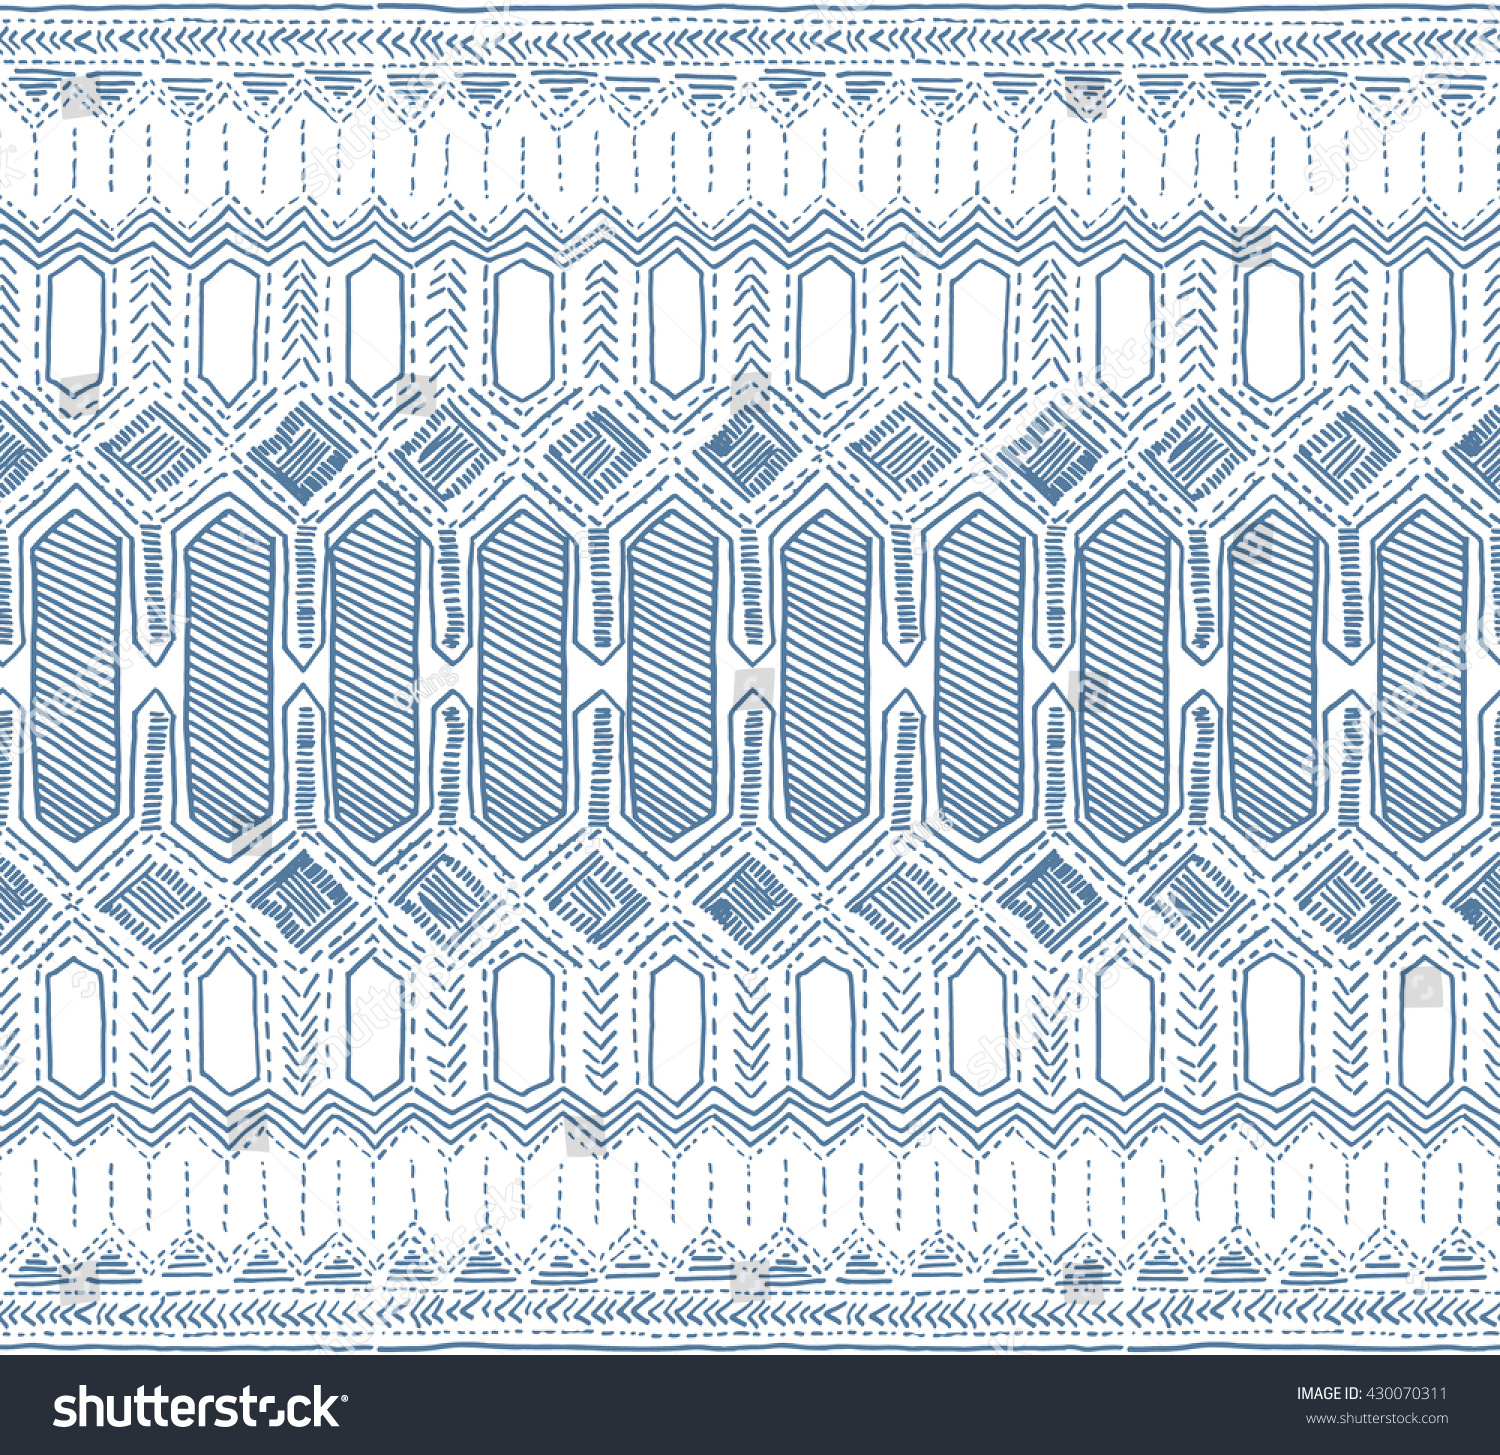 Batik Pattern, Indonesia Batik Vector. Tribal Ethnic